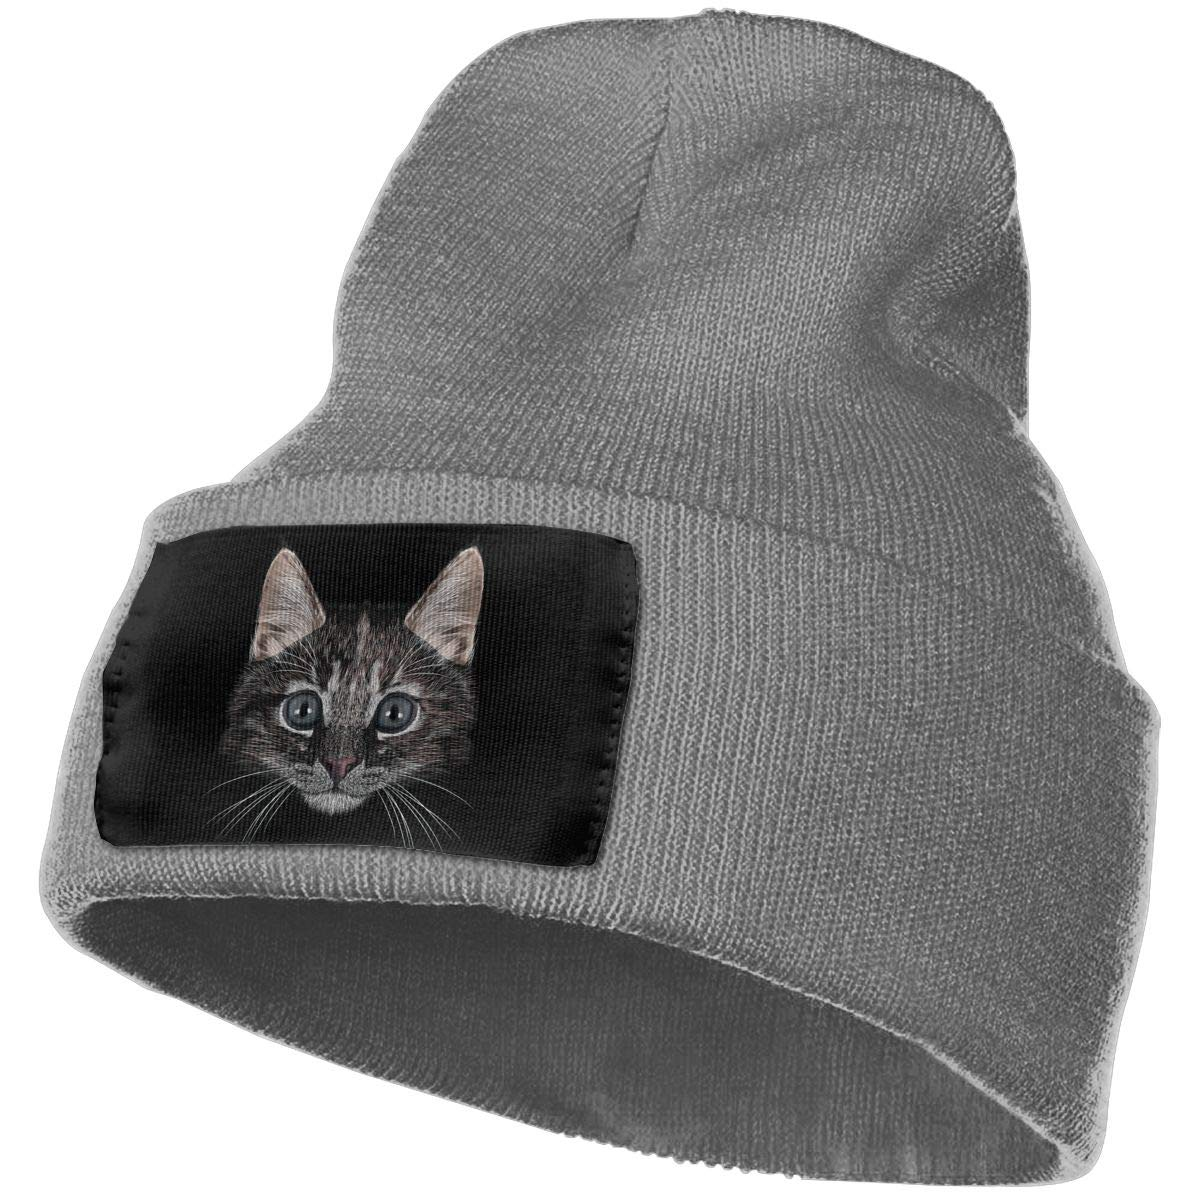 Cat Warm Winter Hat Knit Beanie Skull Cap Cuff Beanie Hat Winter Hats for Men /& Women